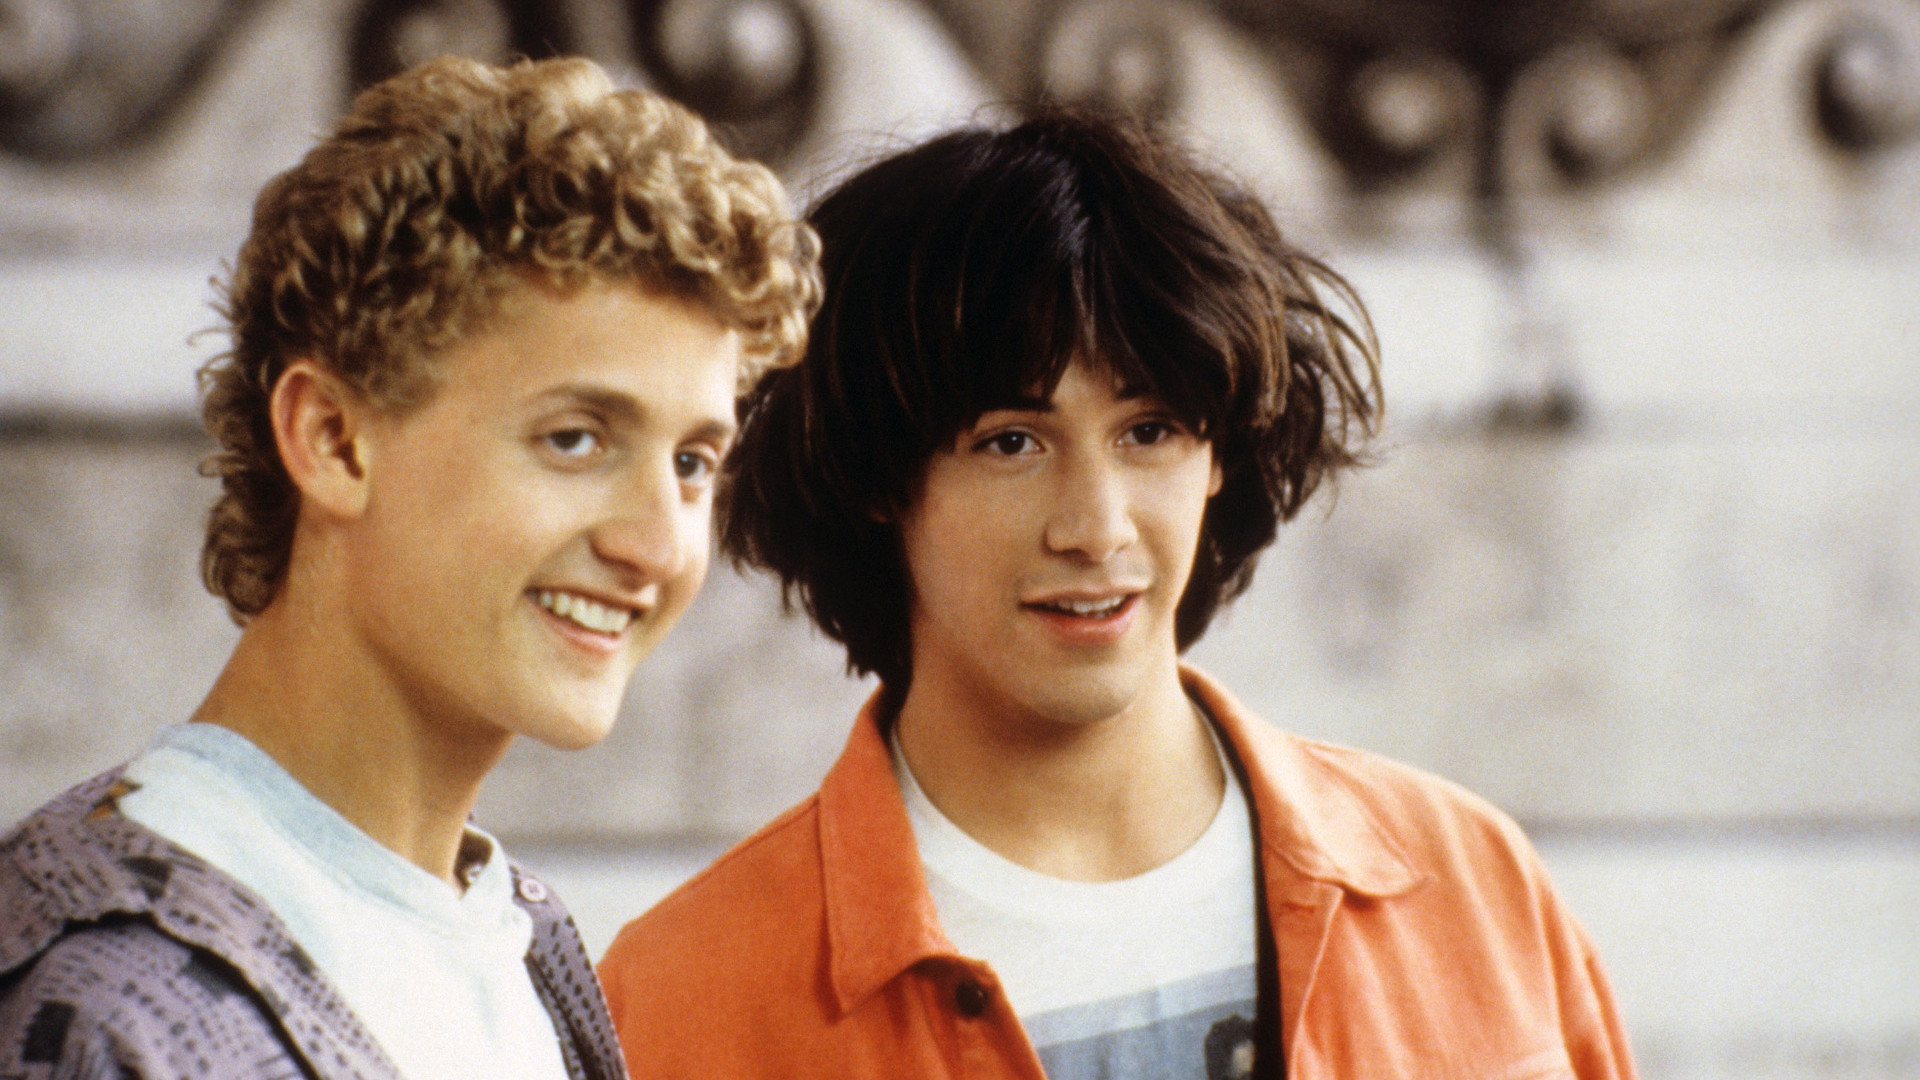 bill-ted-3s-official-title-has-been-revealed-social.jpg